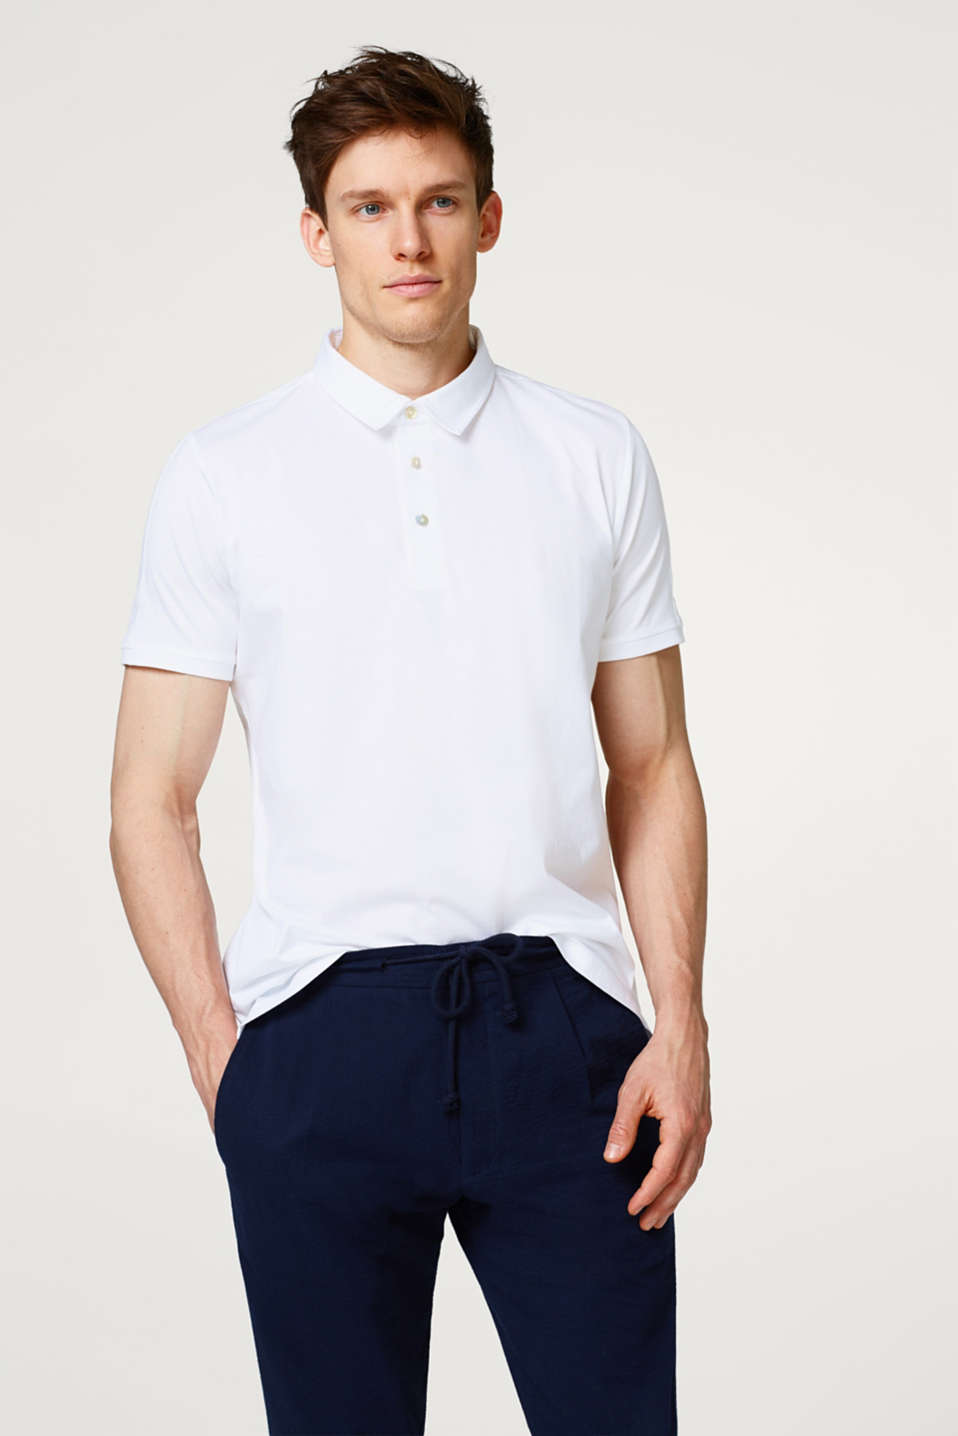 Esprit - Pure cotton jersey polo shirt